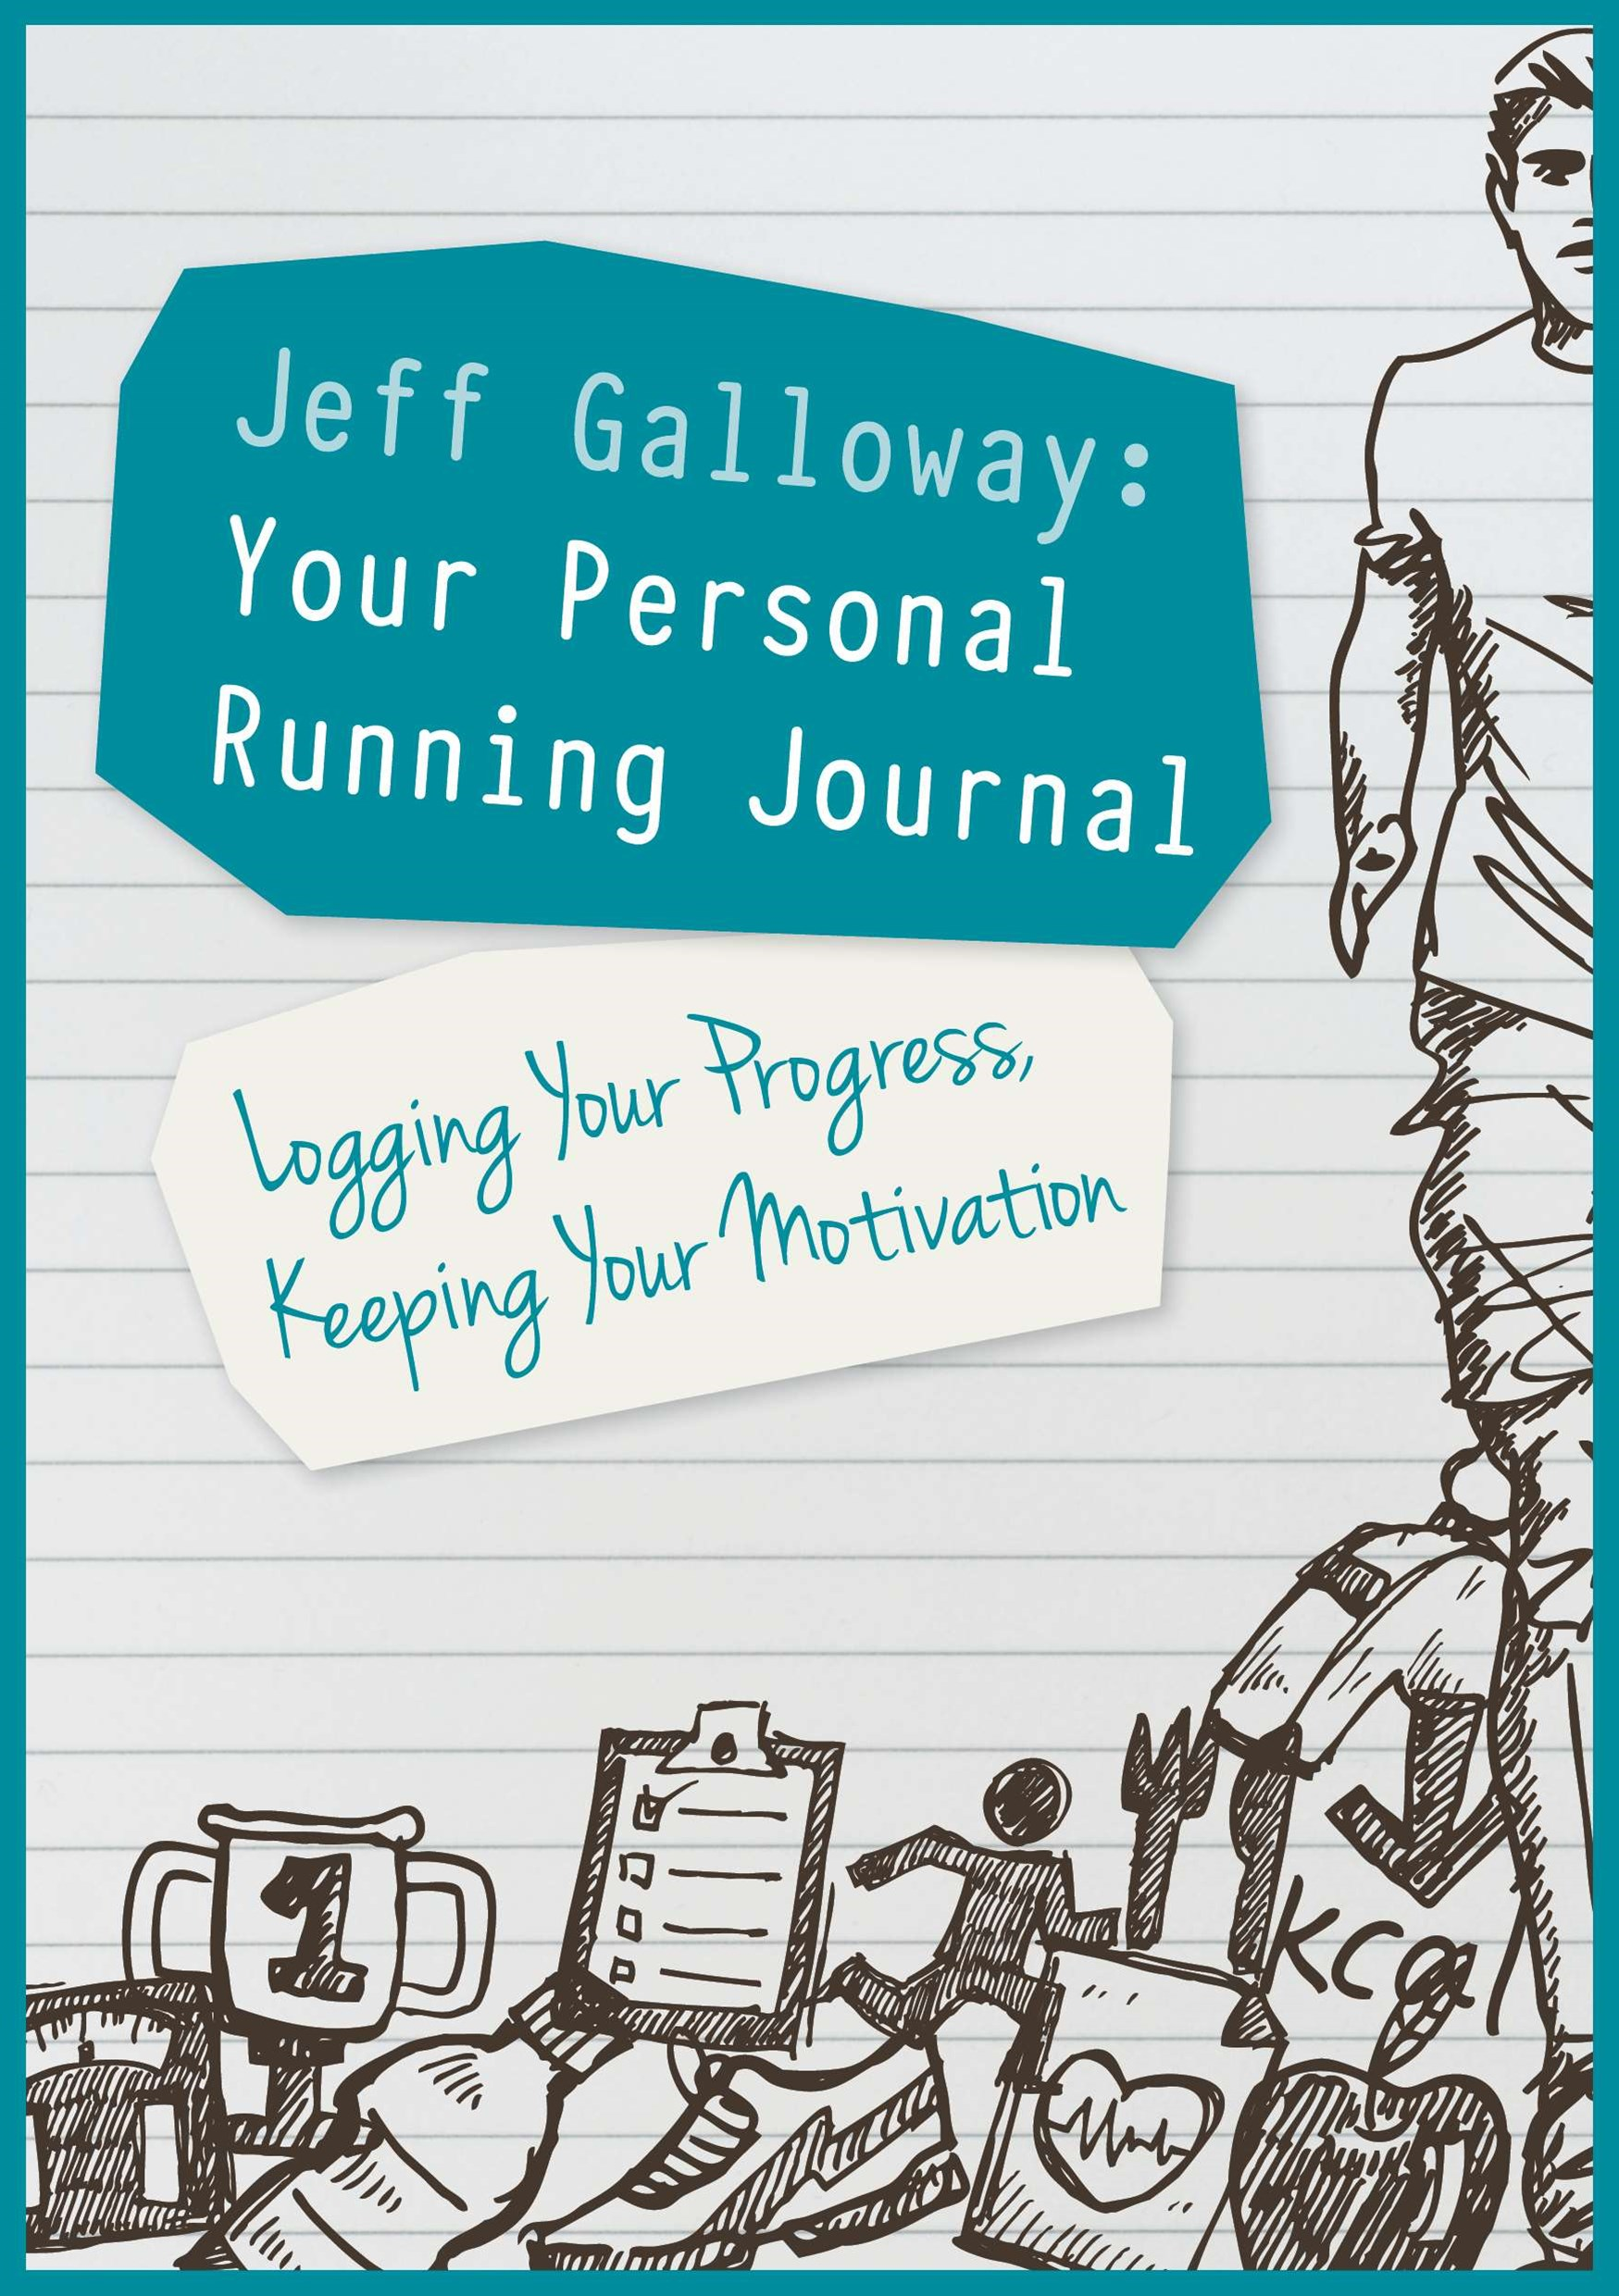 Jeff Galloway: Your Personal Running Journal